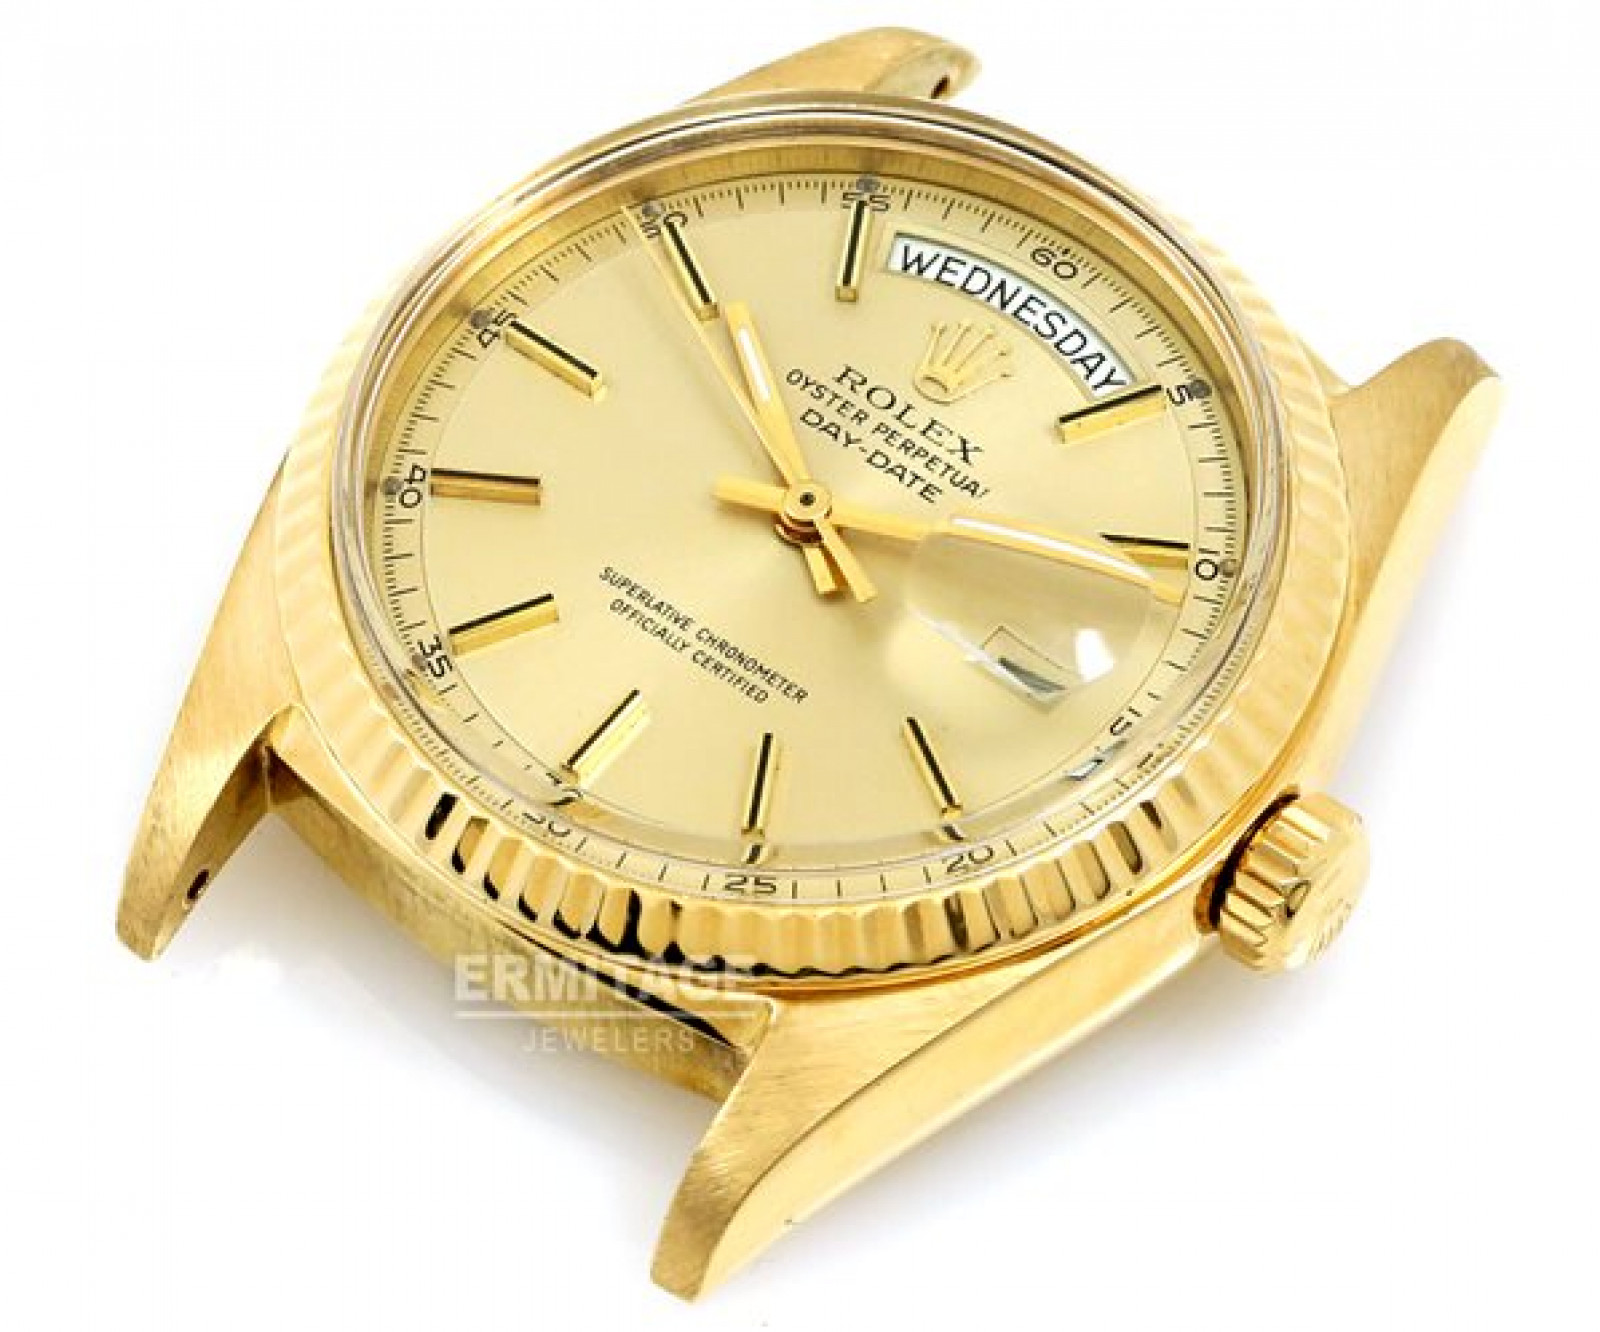 Vintage Rolex Day-Date 1803 Gold Year 1975 with Black Dial